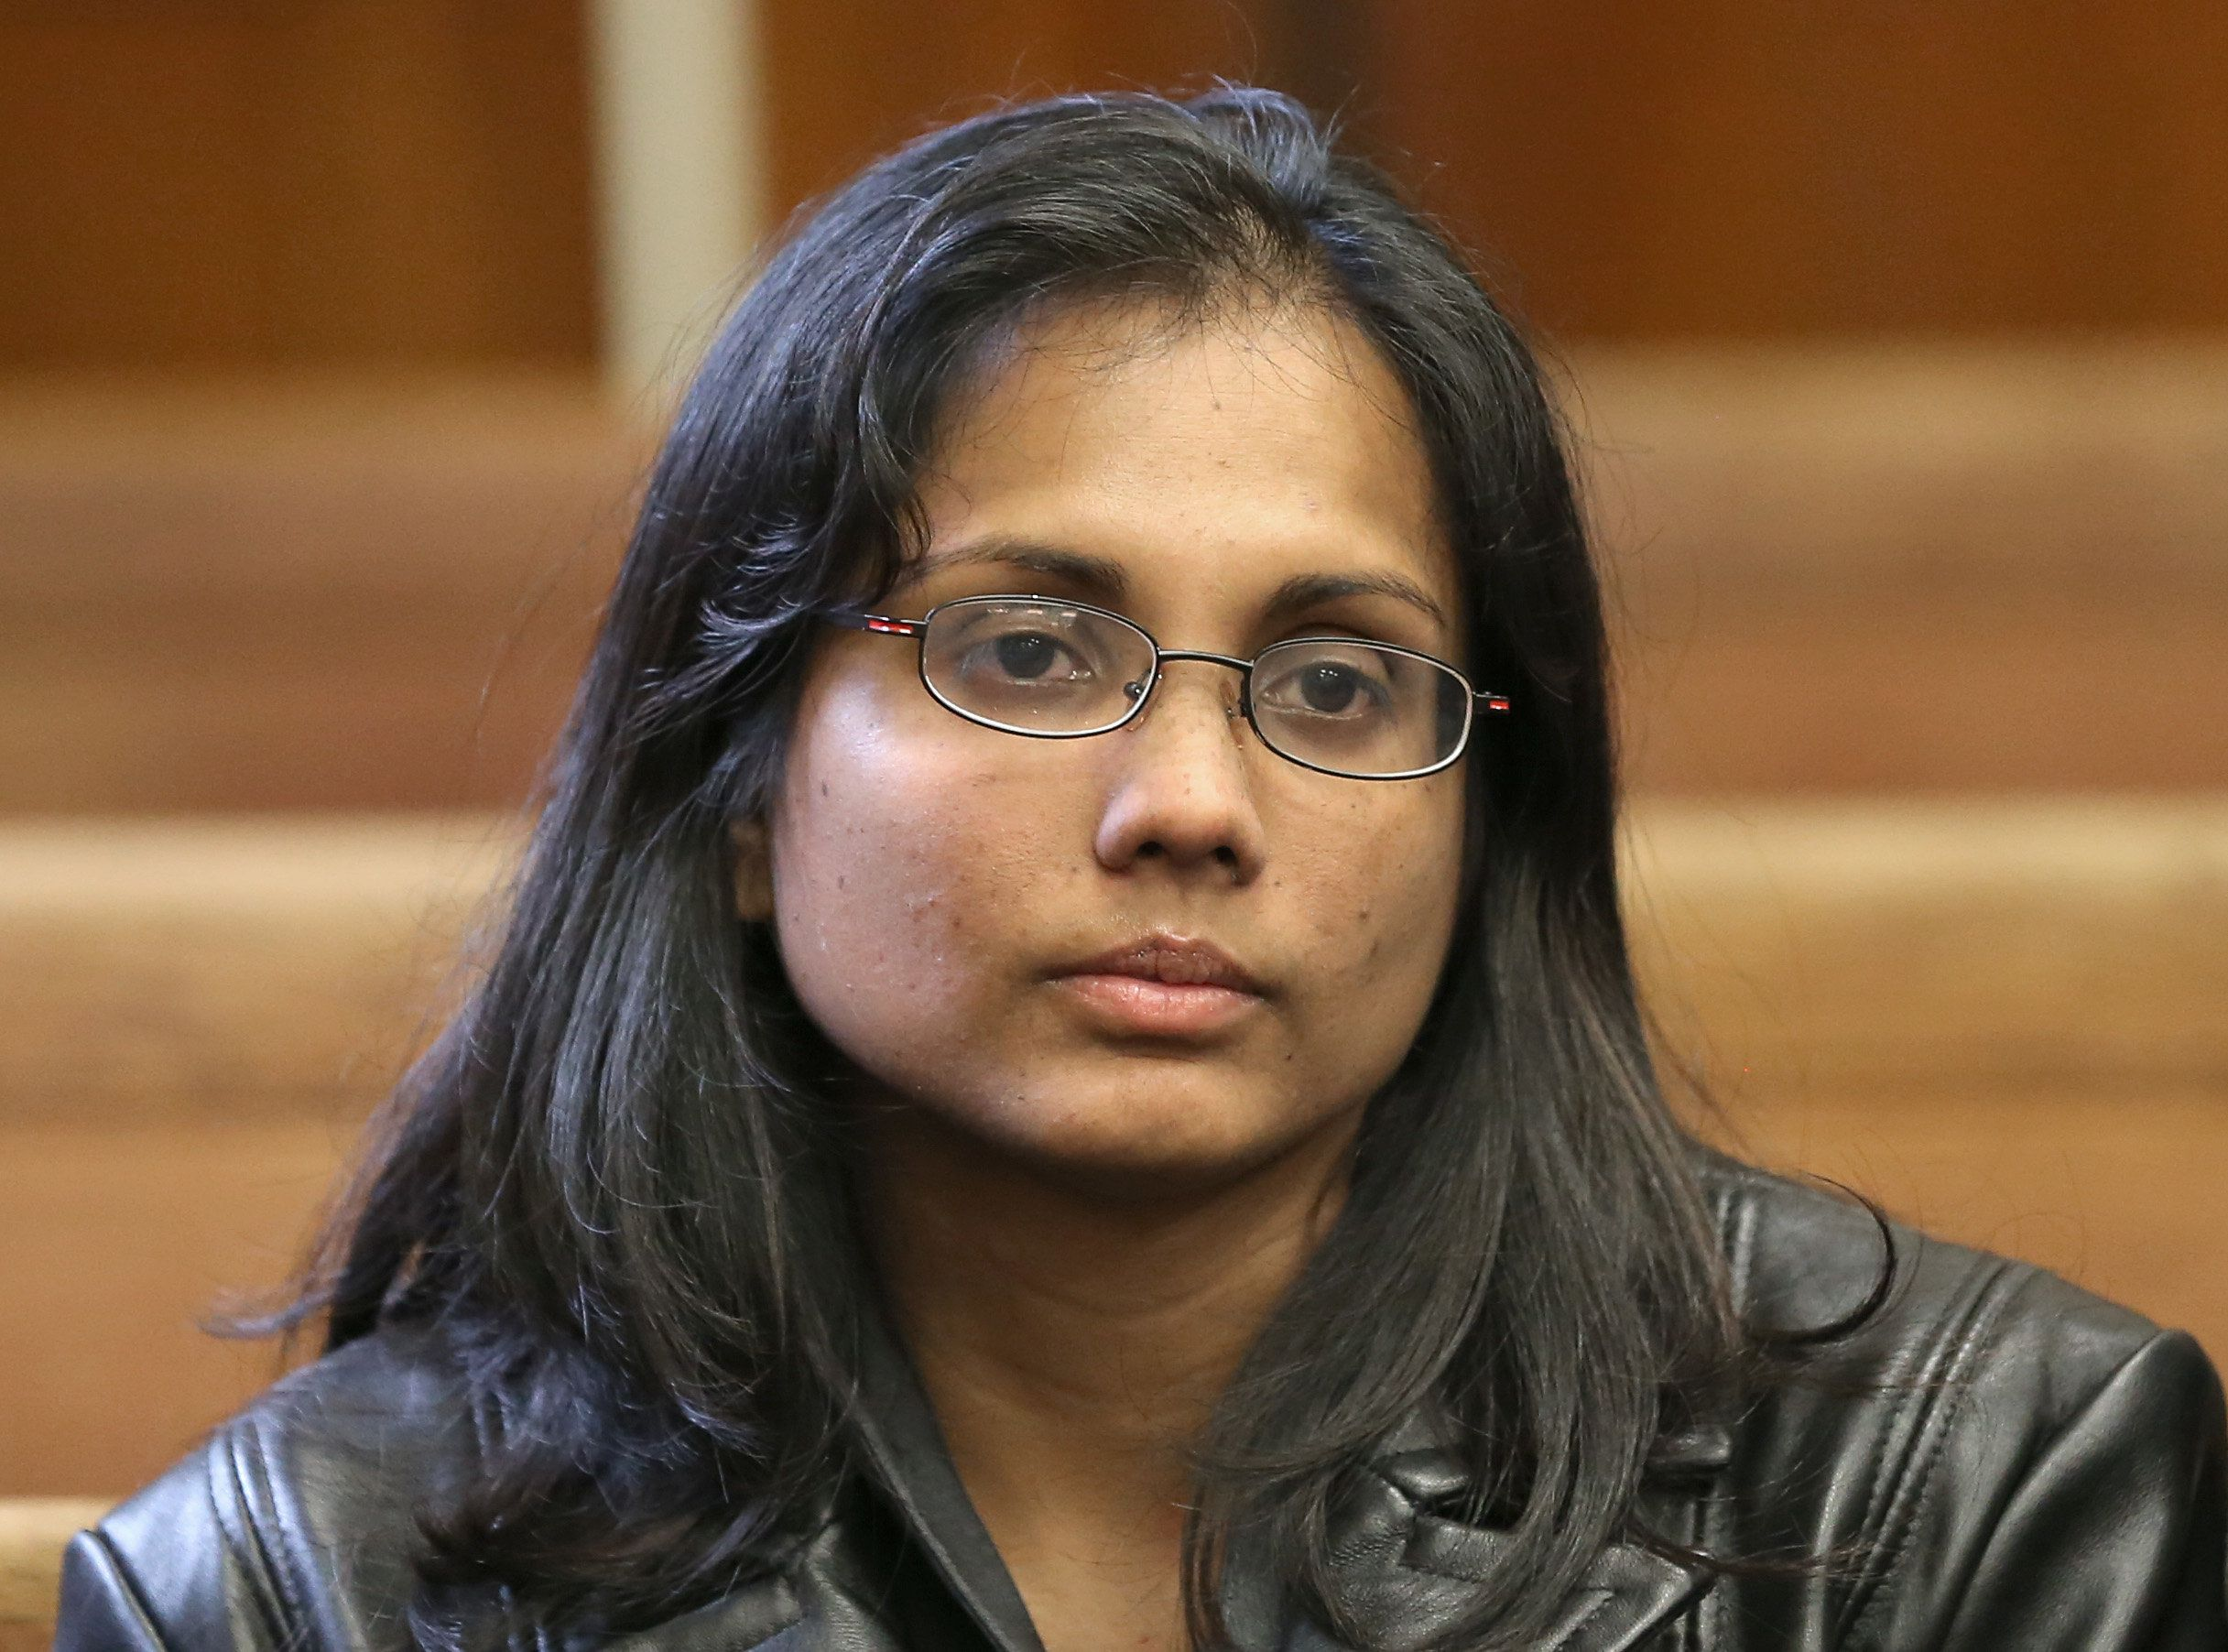 Dookhan entered a guilty plea during her court hearing at Suffolk Superior Court in November 2013.